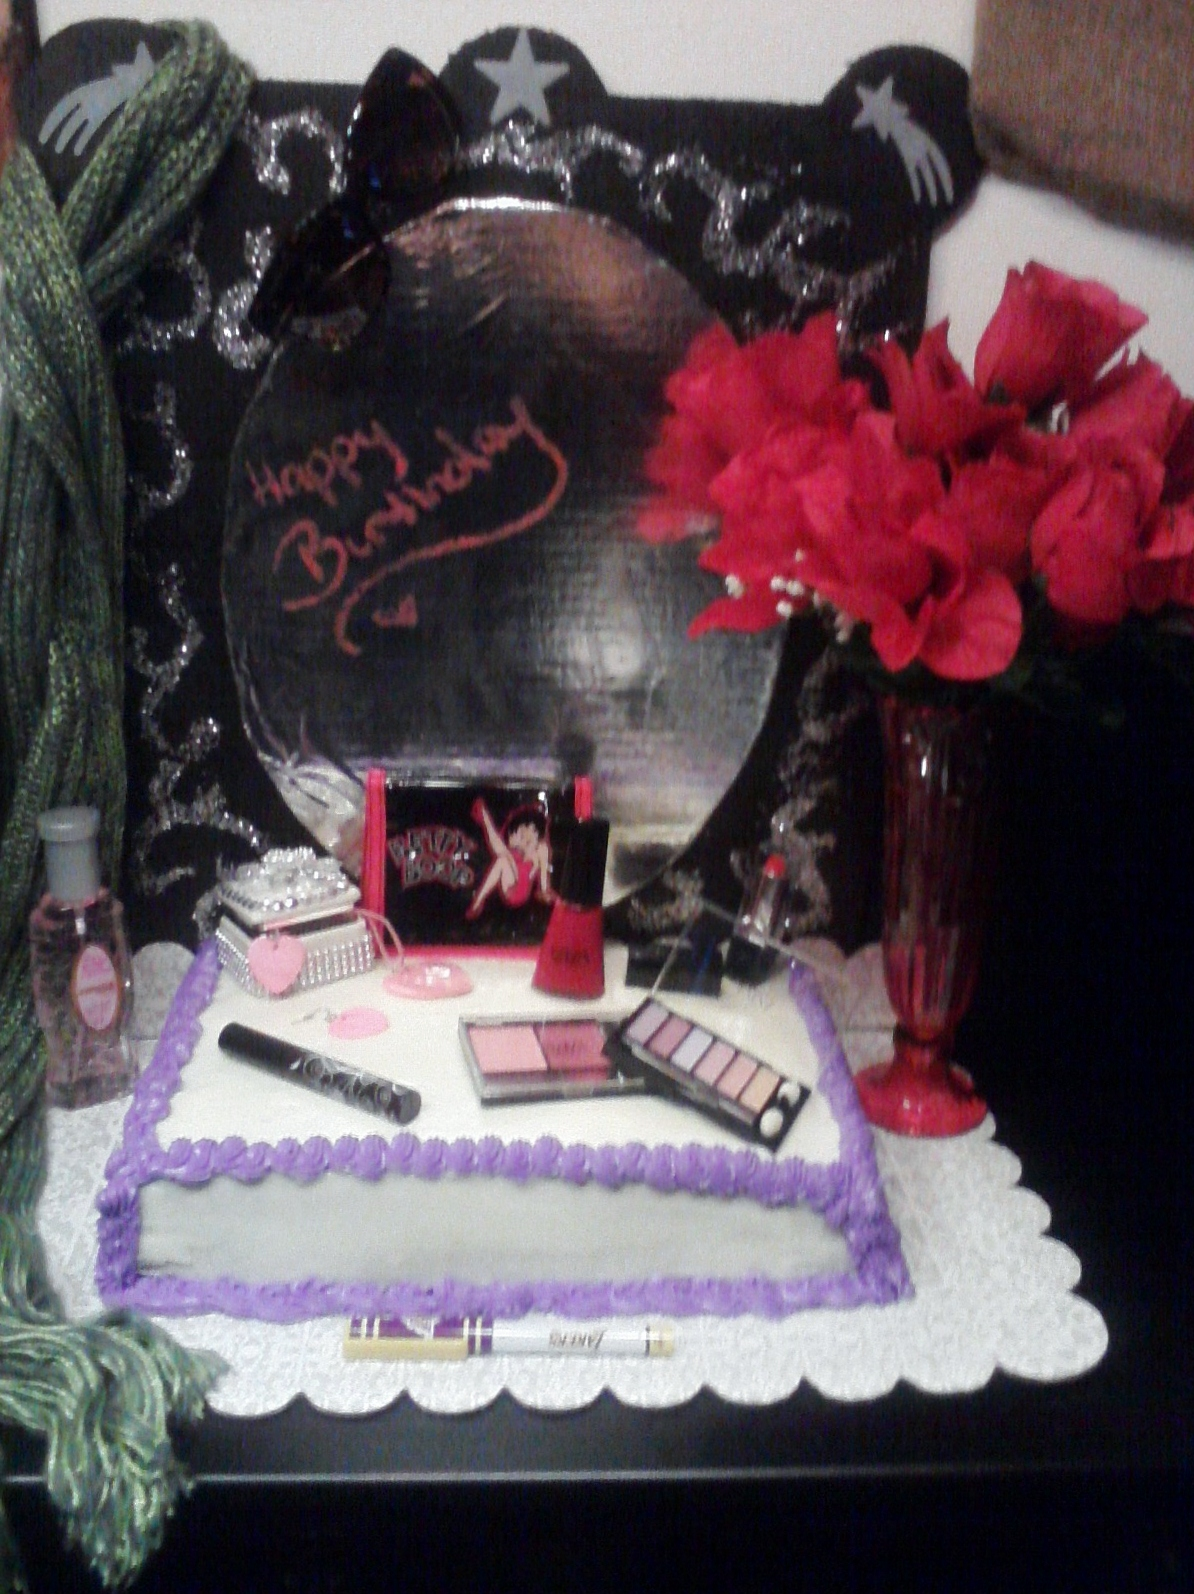 Big Bettie cakes: Betty Boop Vanity & Makeup Cake